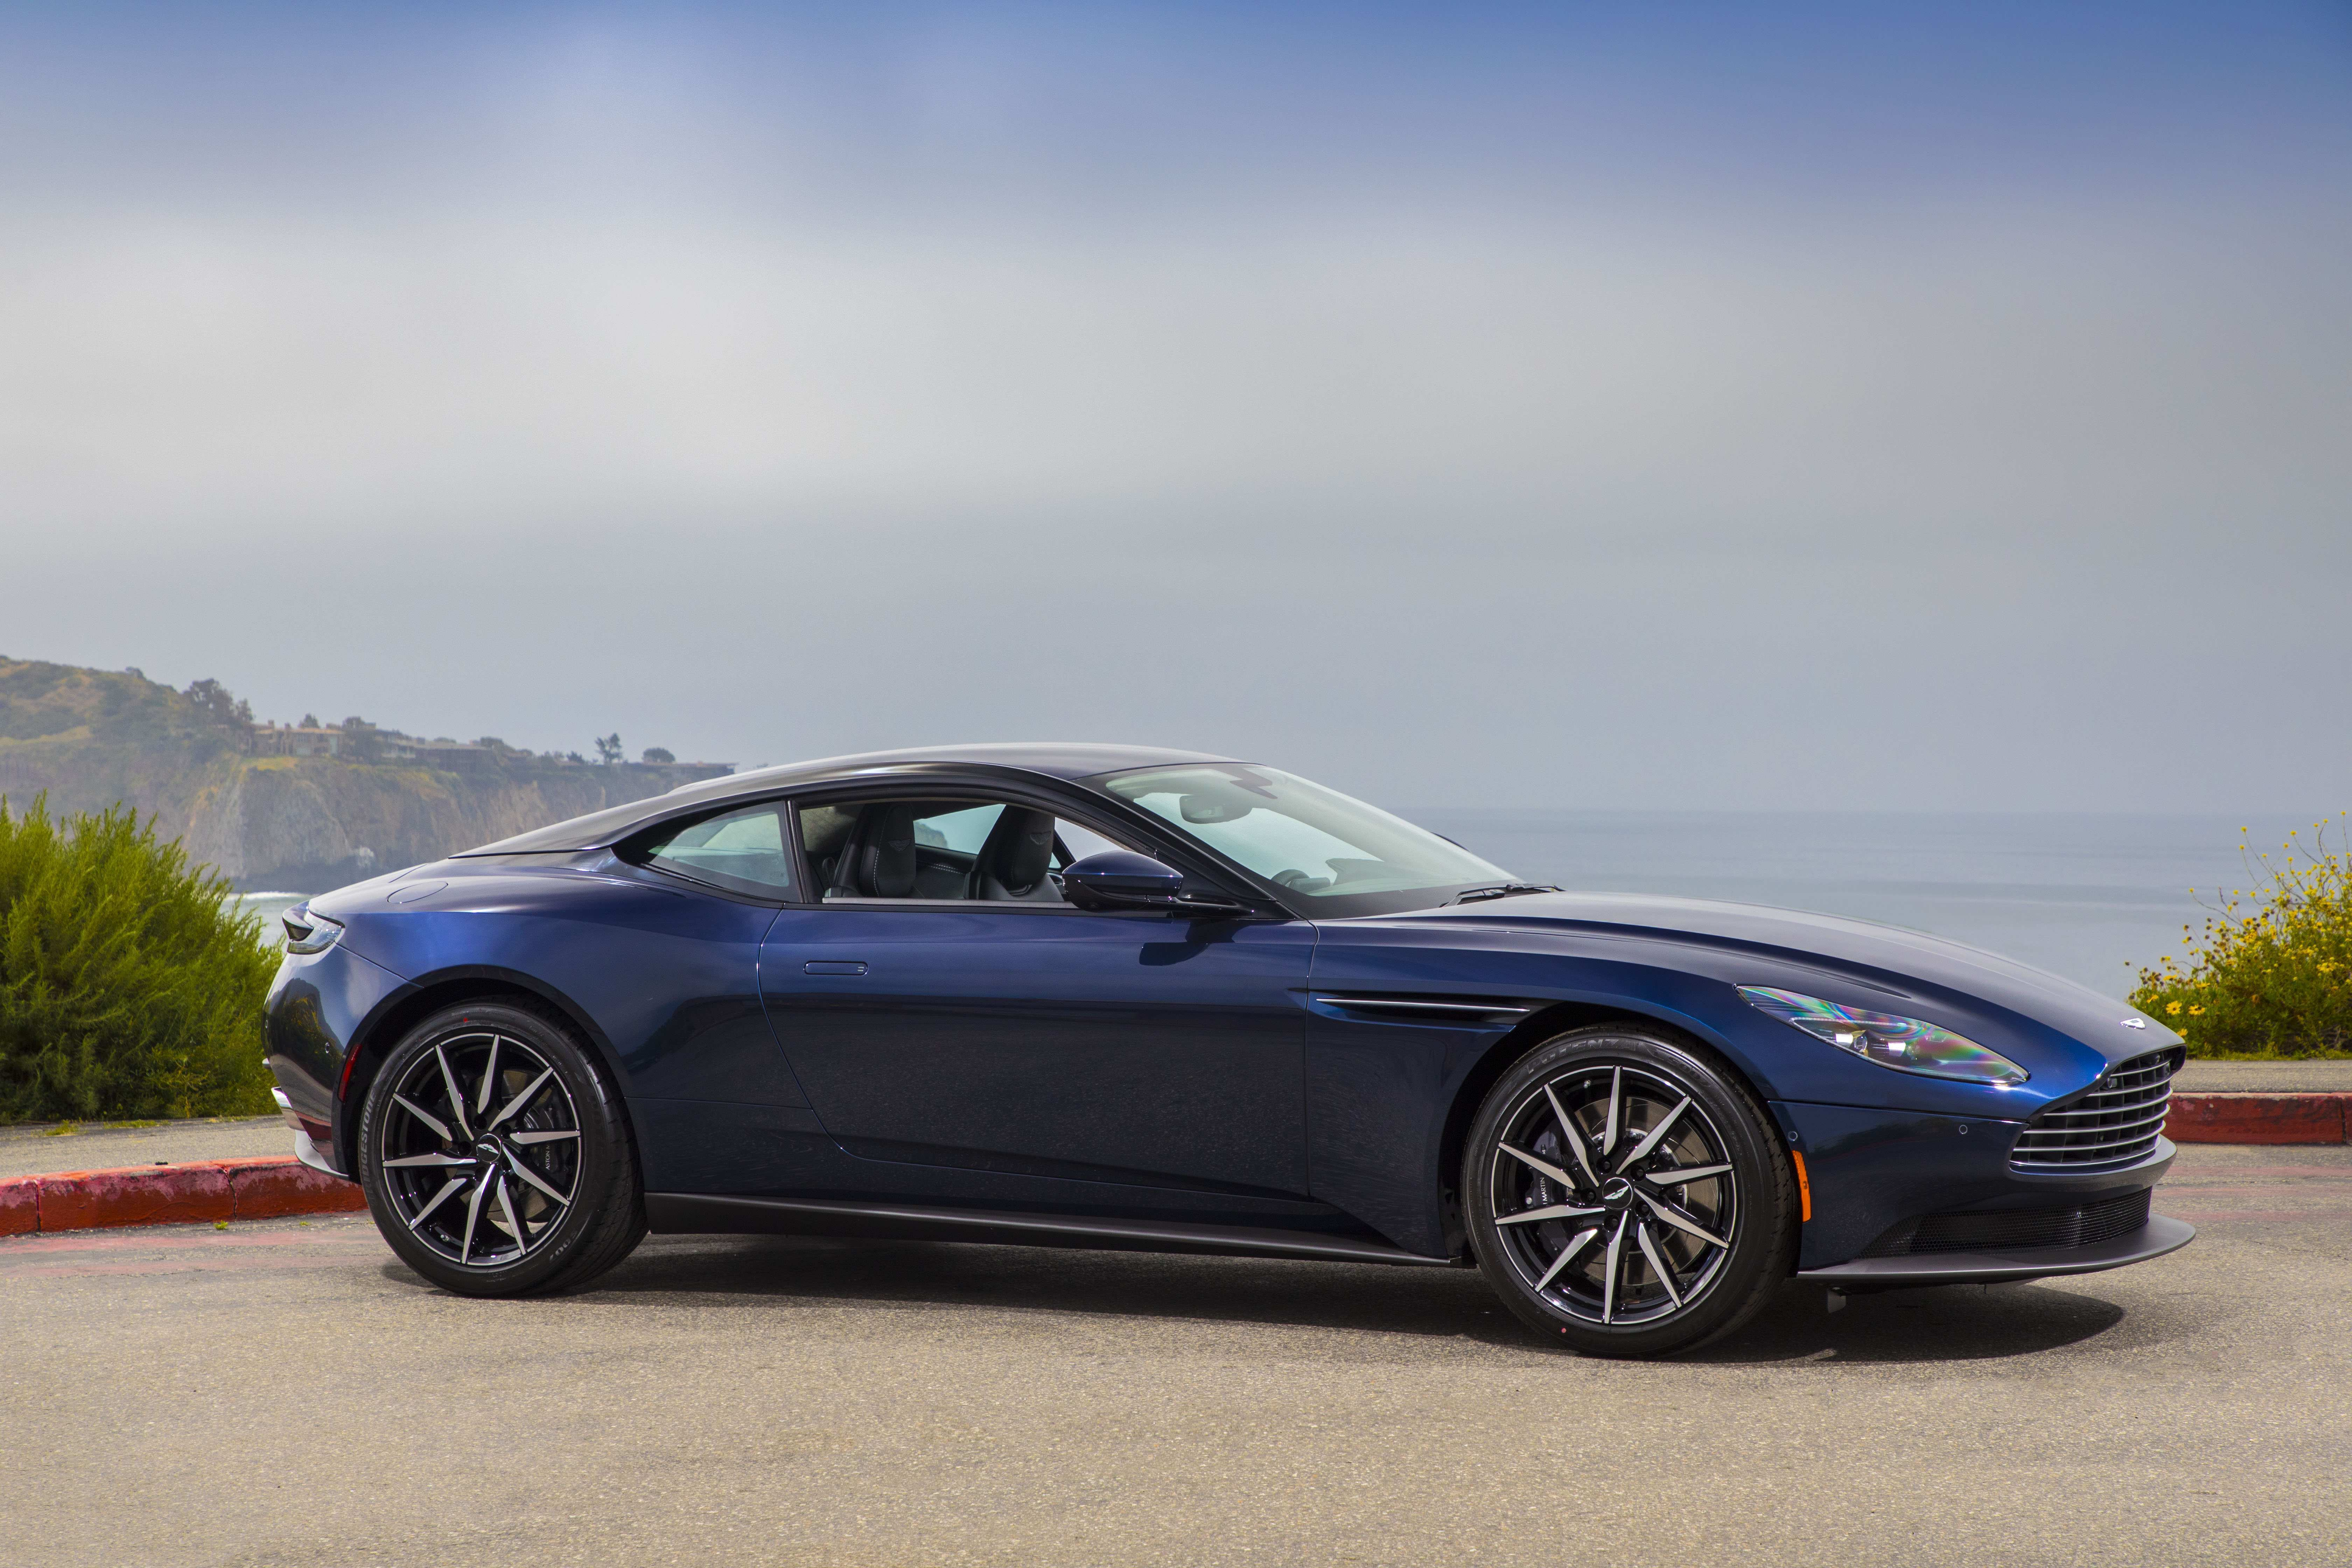 17 All New 2019 Aston Martin DB9 Price And Release Date